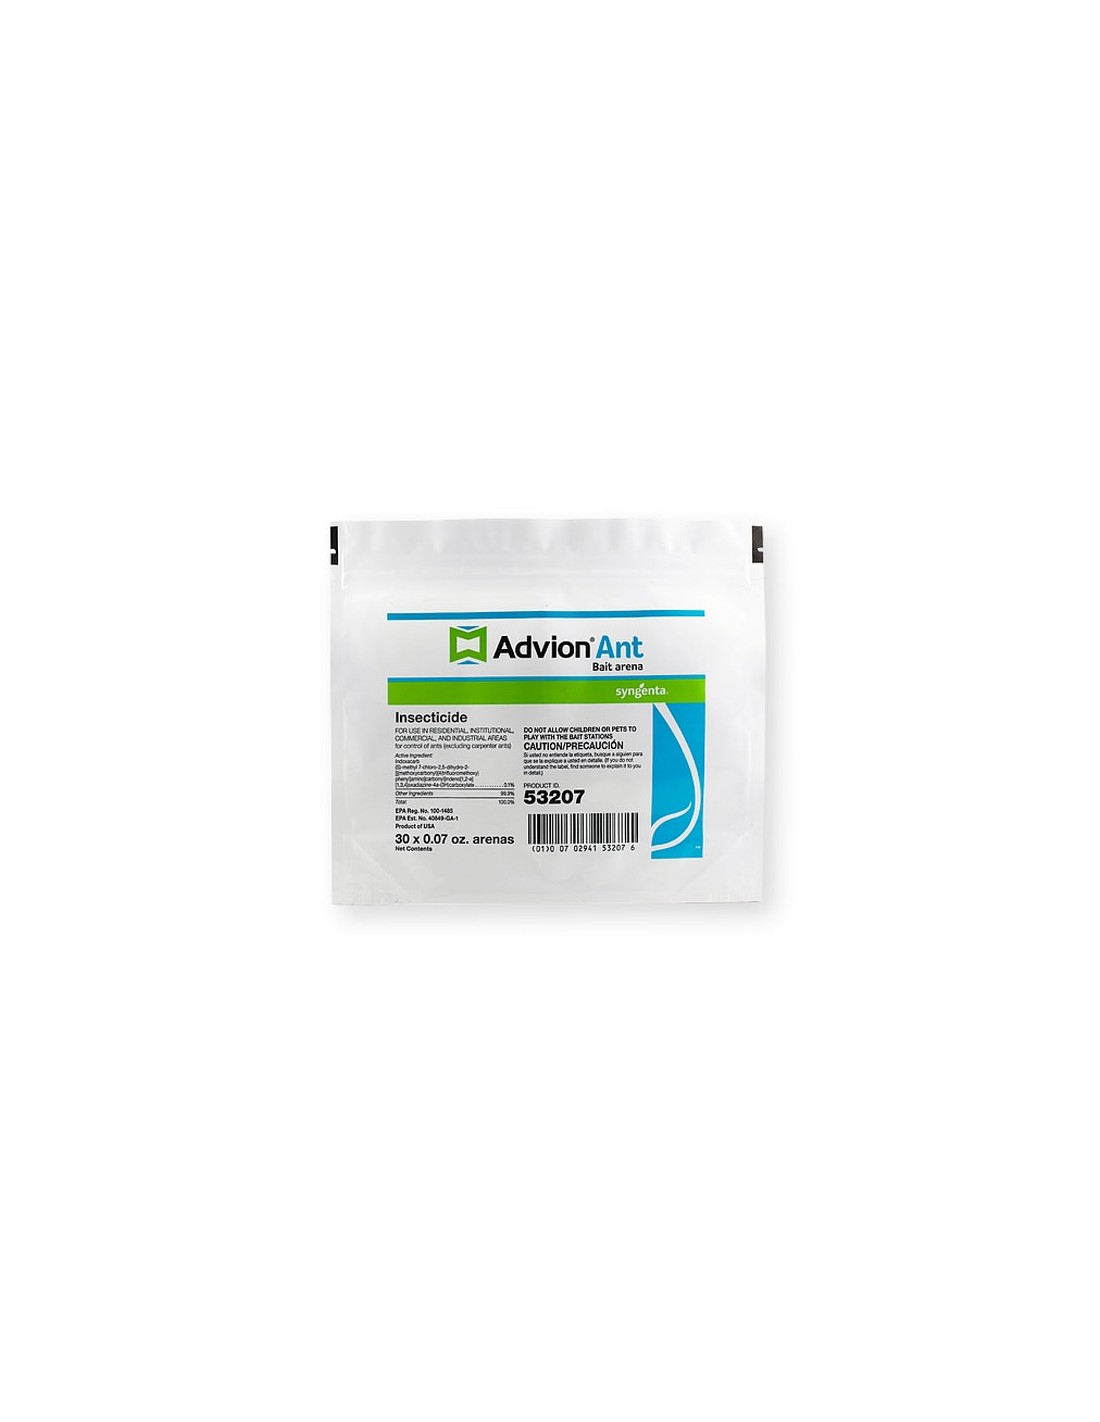 Can I get Advion Ant Bait kit in Canada?  I have pharoah ants